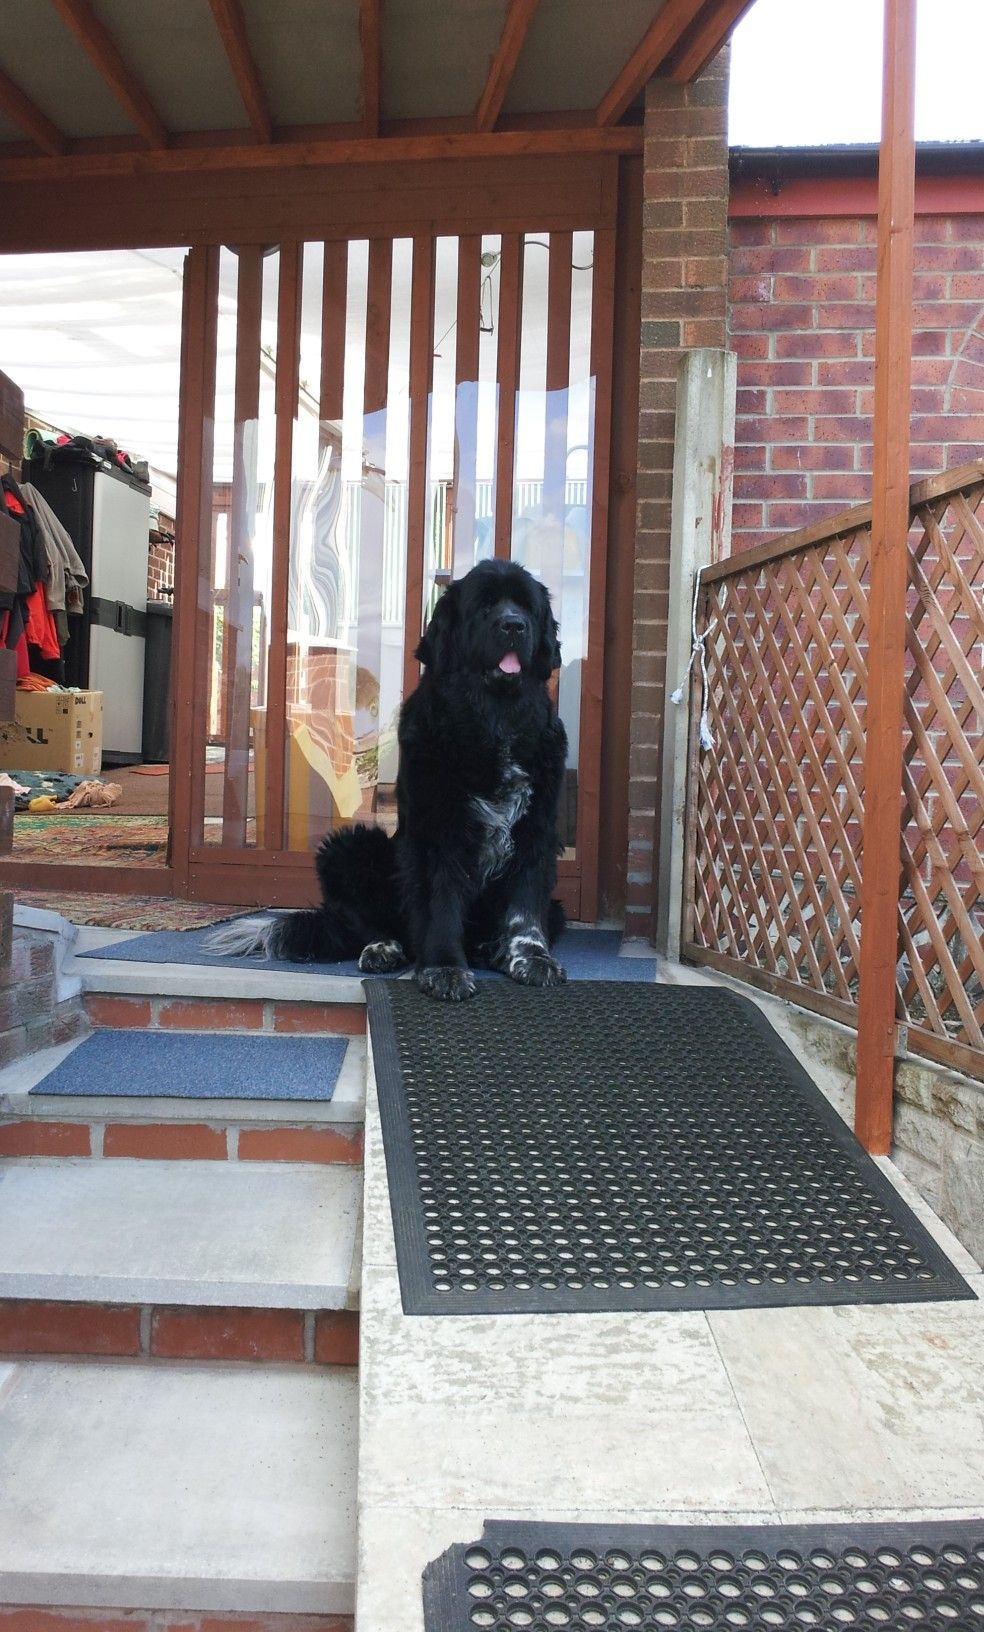 Katie She Had Some Heart Problems And Passed Age 8 Years Newfoundland Dog Newfoundland Dogs